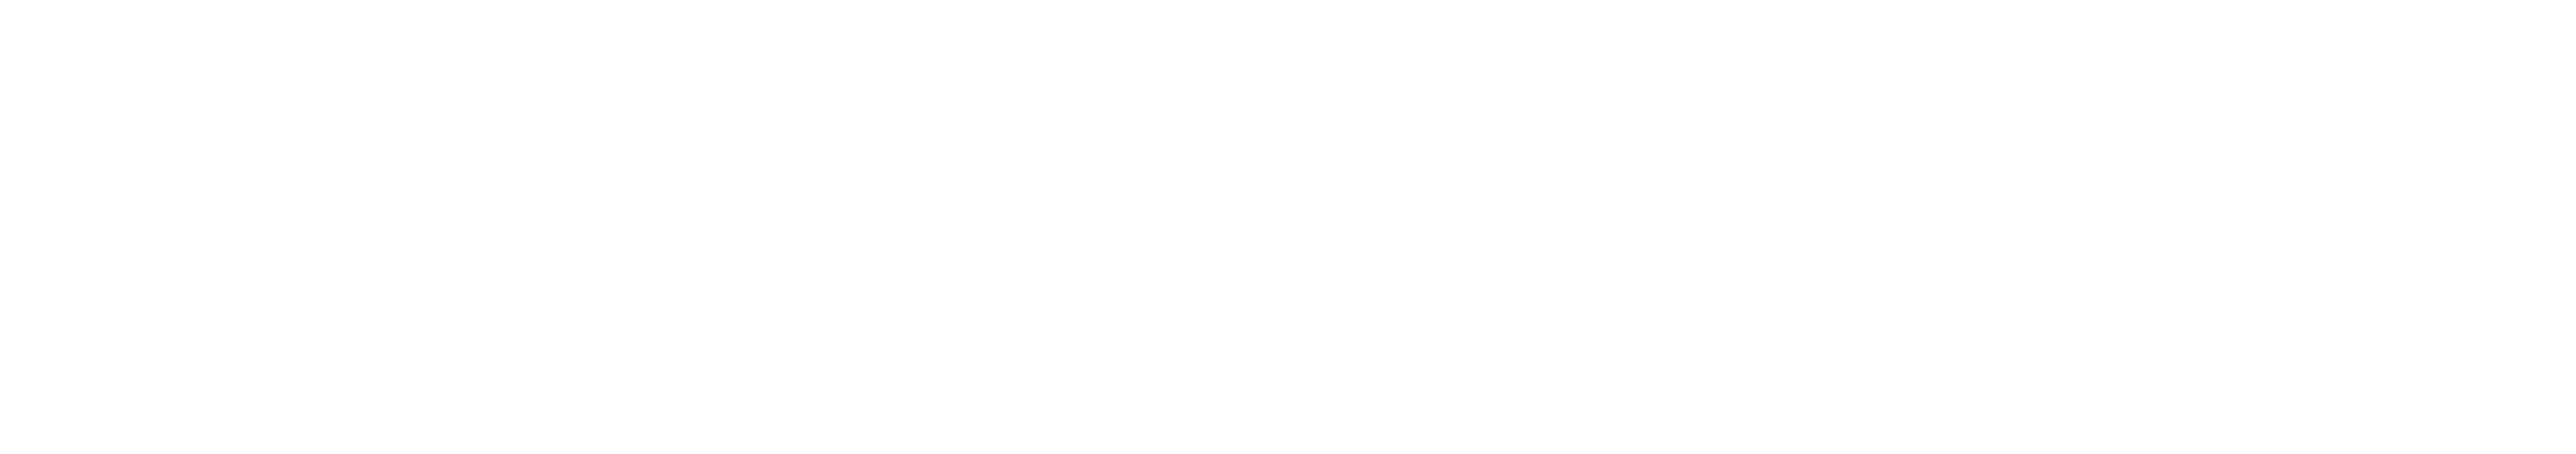 The Szabo Group